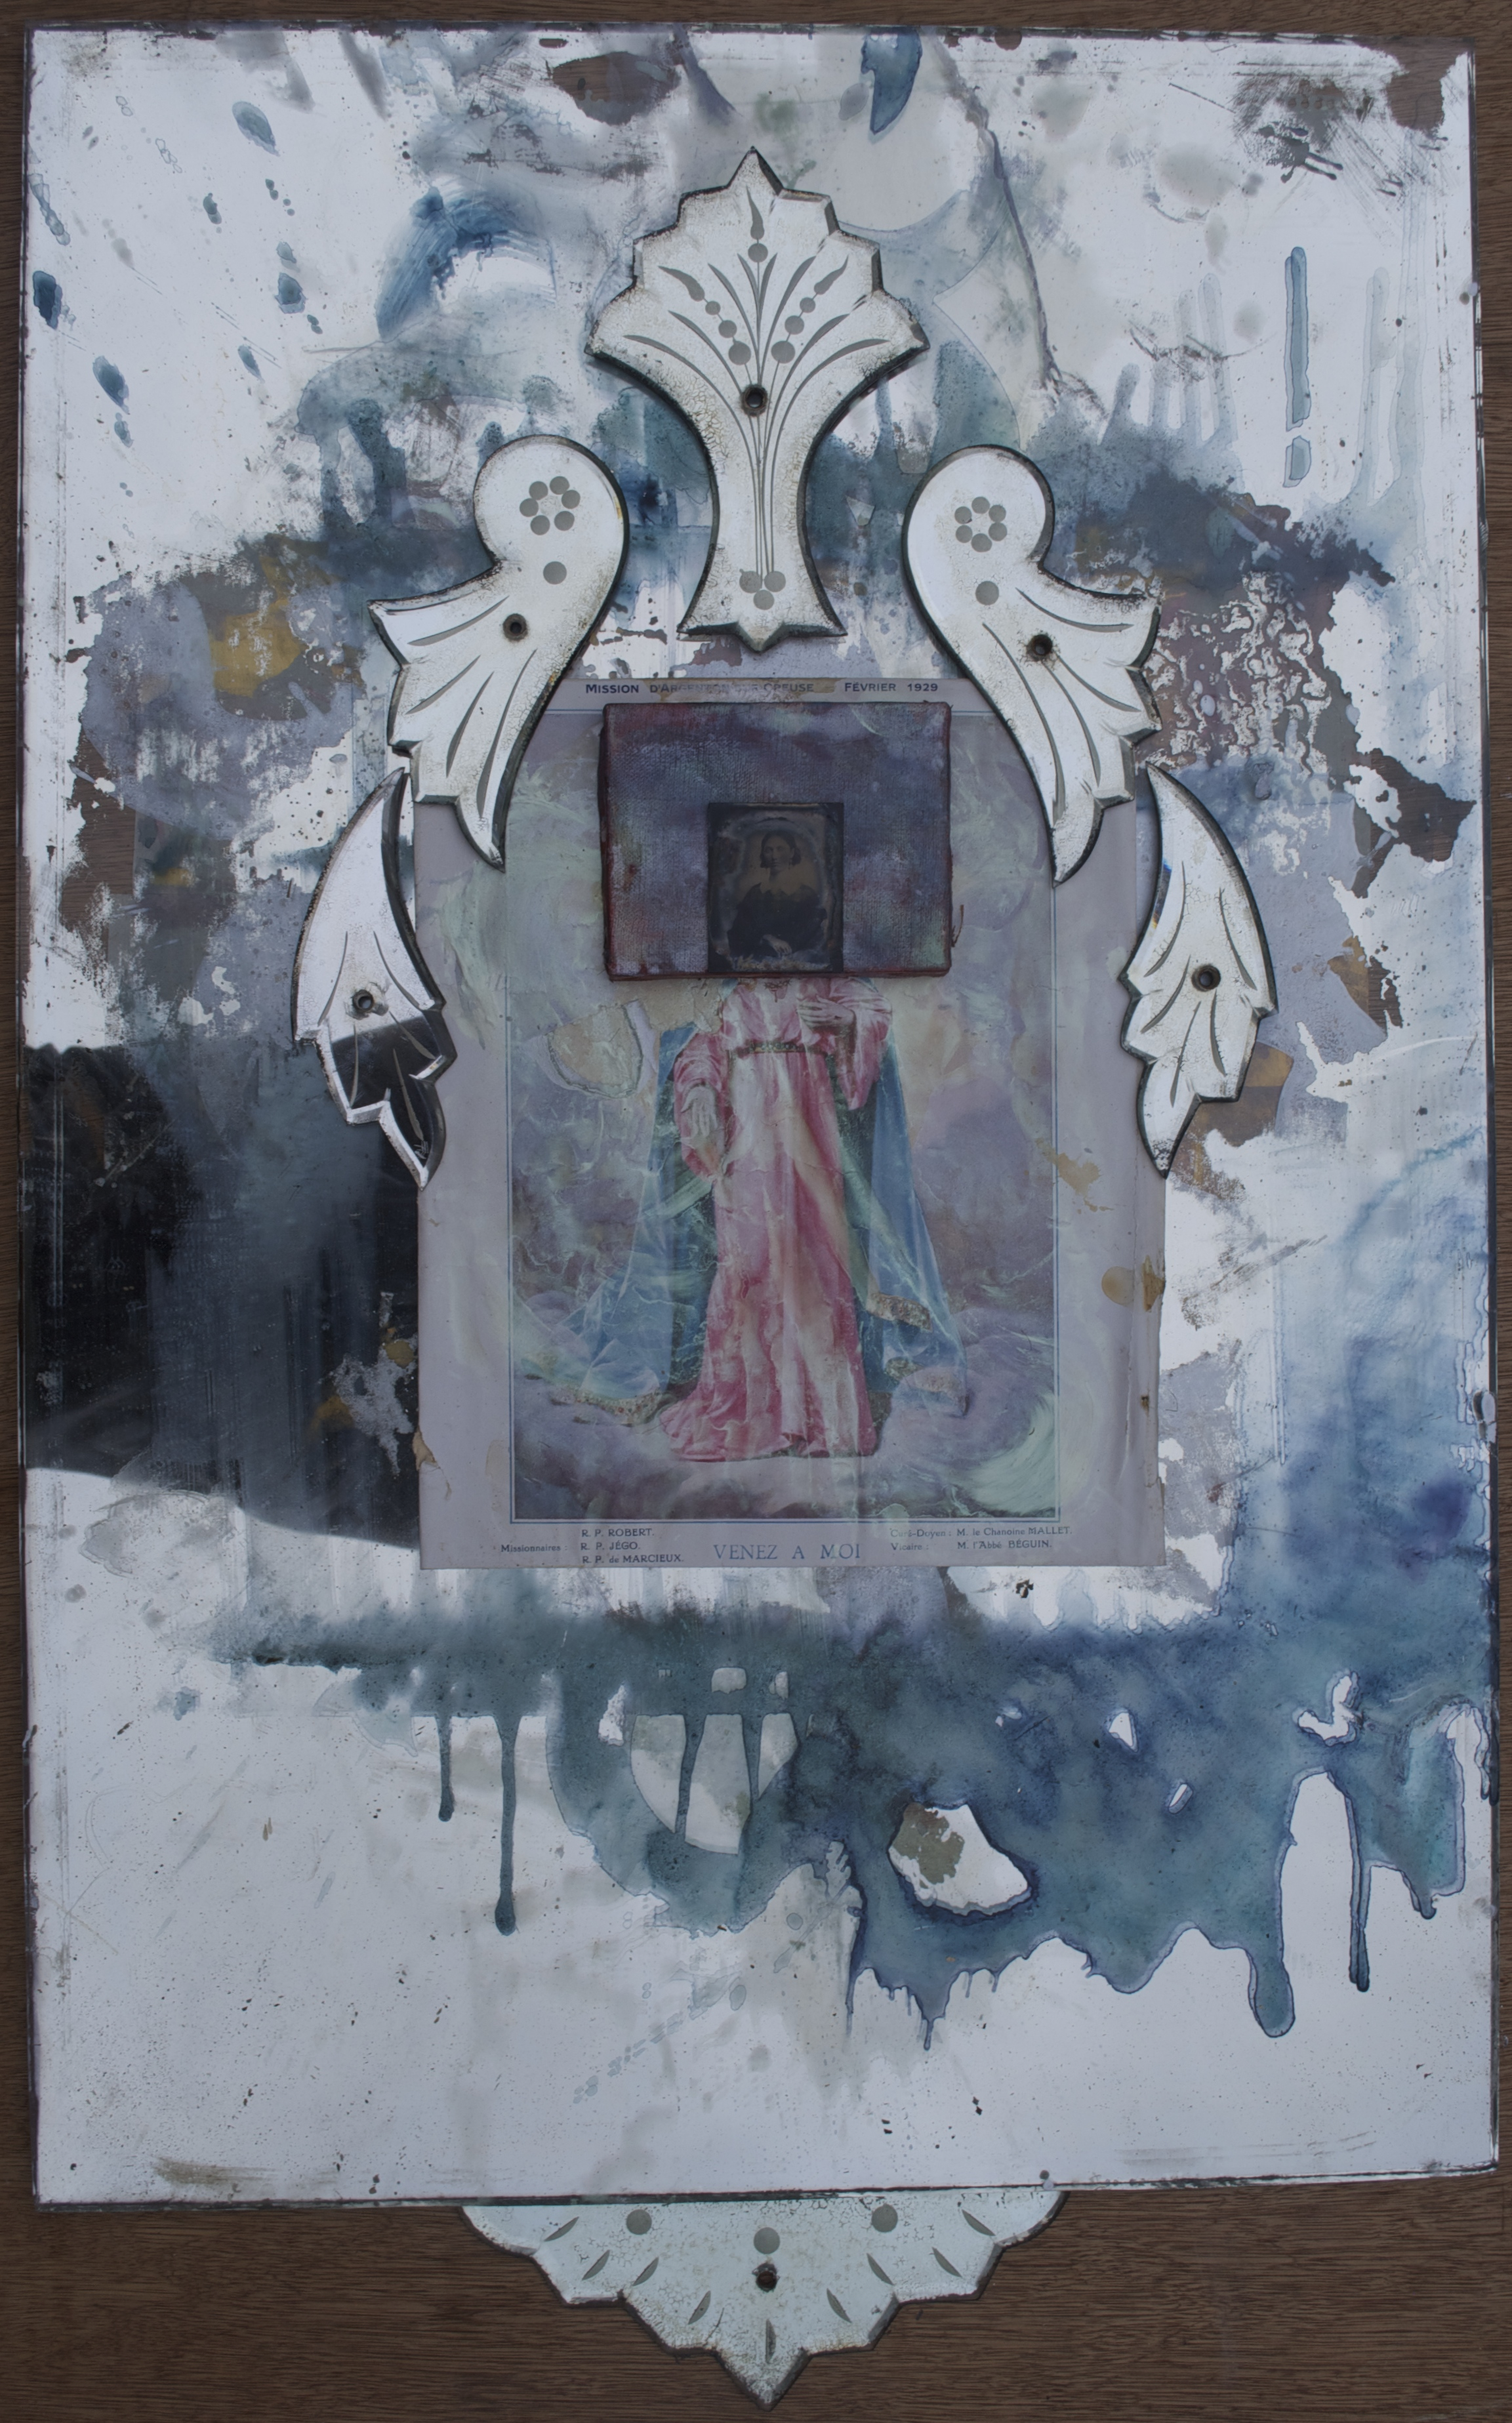 Venez a Moi (Our Lady of Immeasurable Likeness) Acrylic, acrylic on canvas, ambrotype, glass and collage on antique mirror, over acrylic on paper, Avril 2015; 91 x 55.5 cm  Copyright © Tennyson Woodbridge, 1963 to present